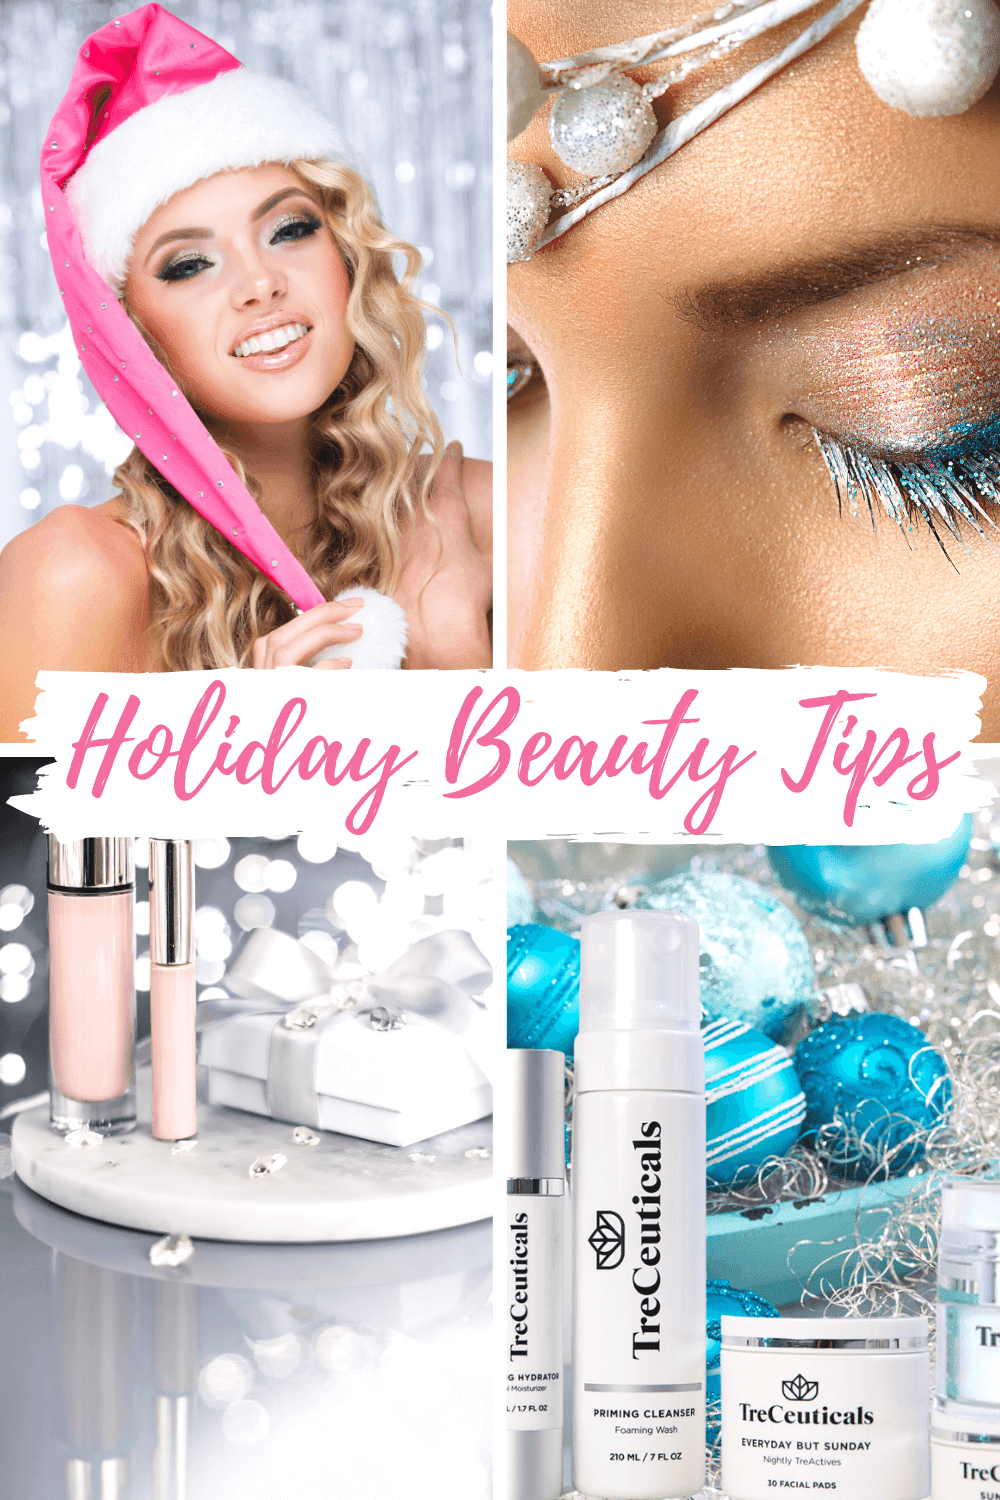 Beauty Tips To Help You Look And Feel Your Best This Holiday